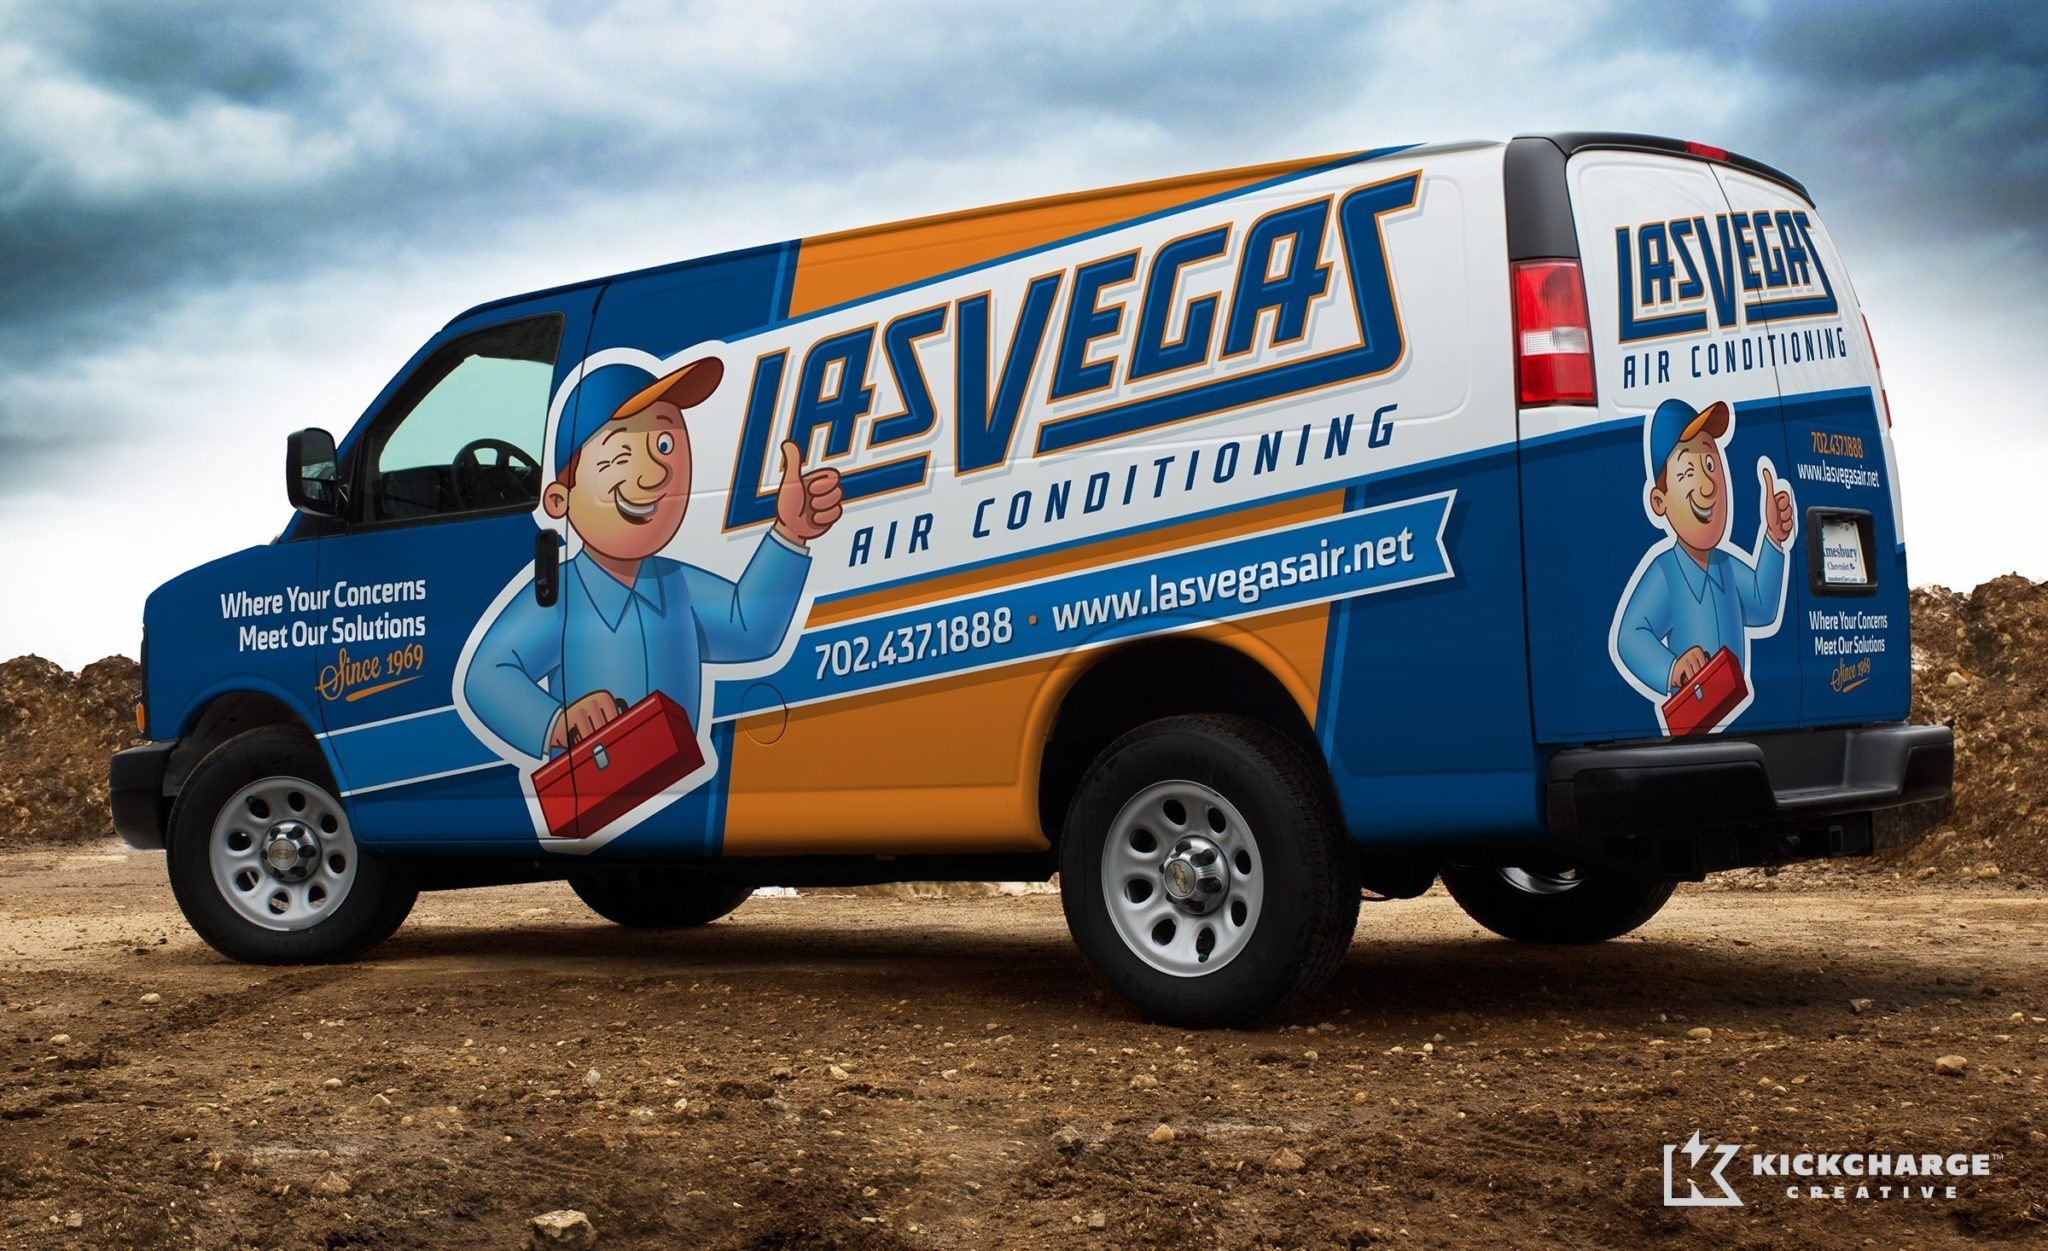 Top 5 Rules For Effective Vehicle Wrap Design on plumbing service logos